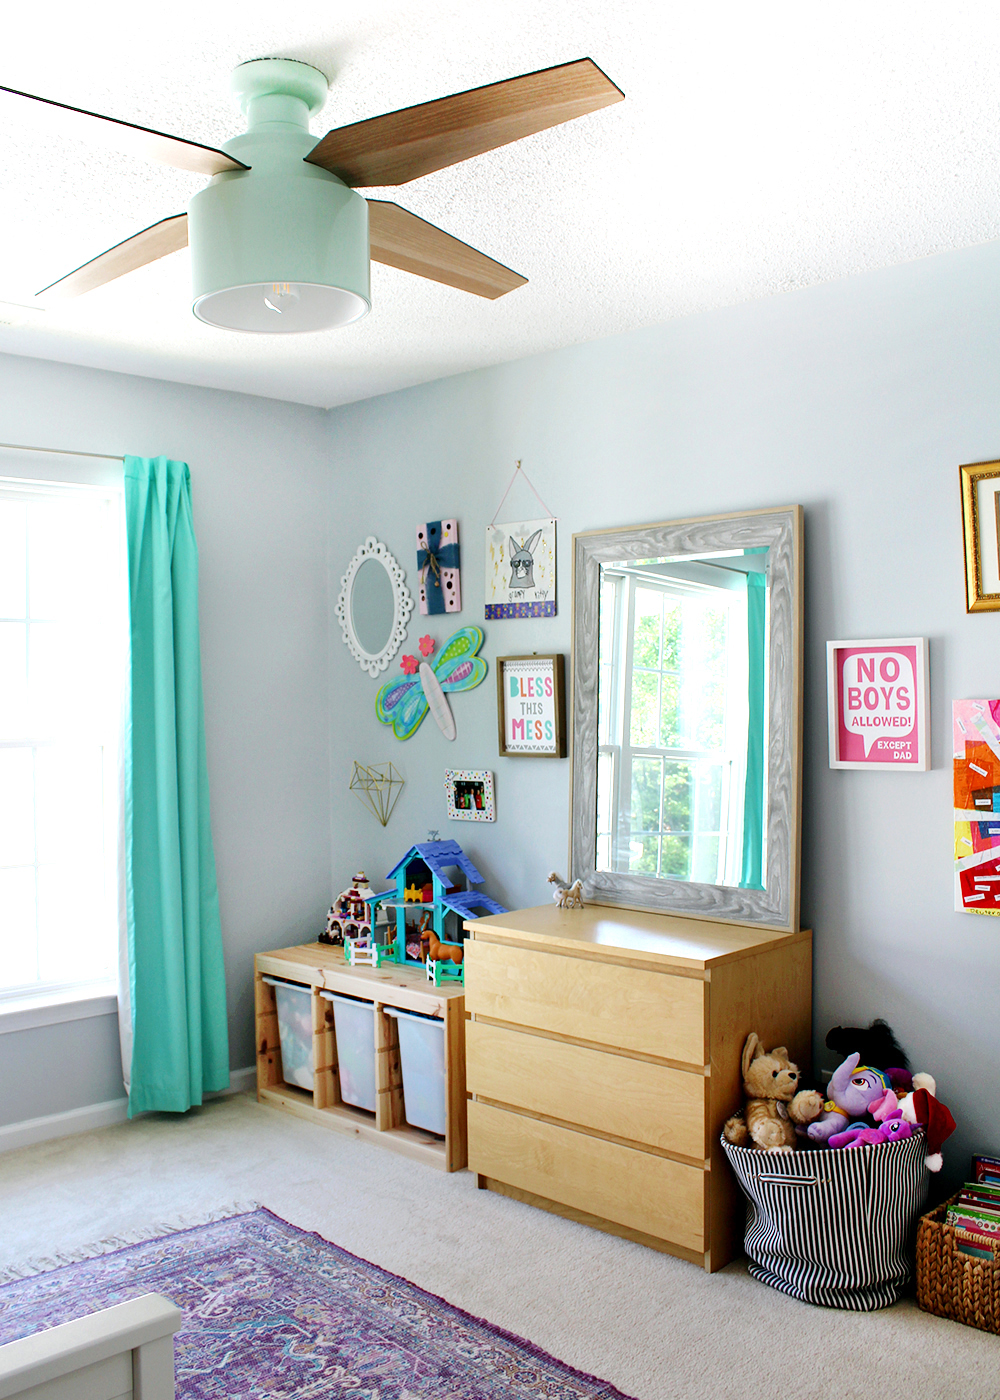 light blue girl's bedroom #tween #preteengirlsroom #kidsbedroom